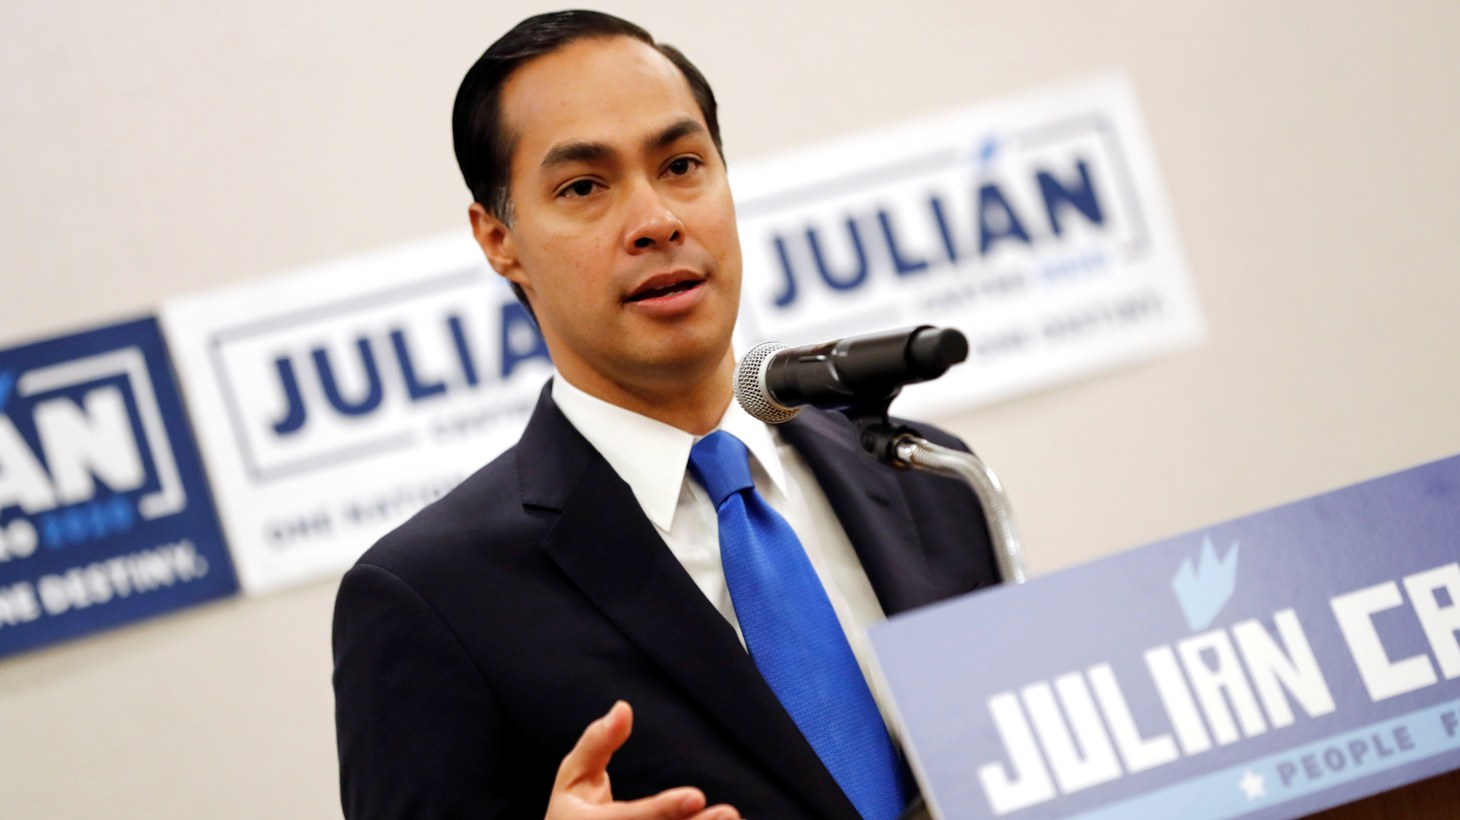 Julian Castro speaks to members of the media the morning after participating in the first U.S. 2020 presidential election Democratic candidates debate in Miami, Florida, U.S., June 27, 2019.